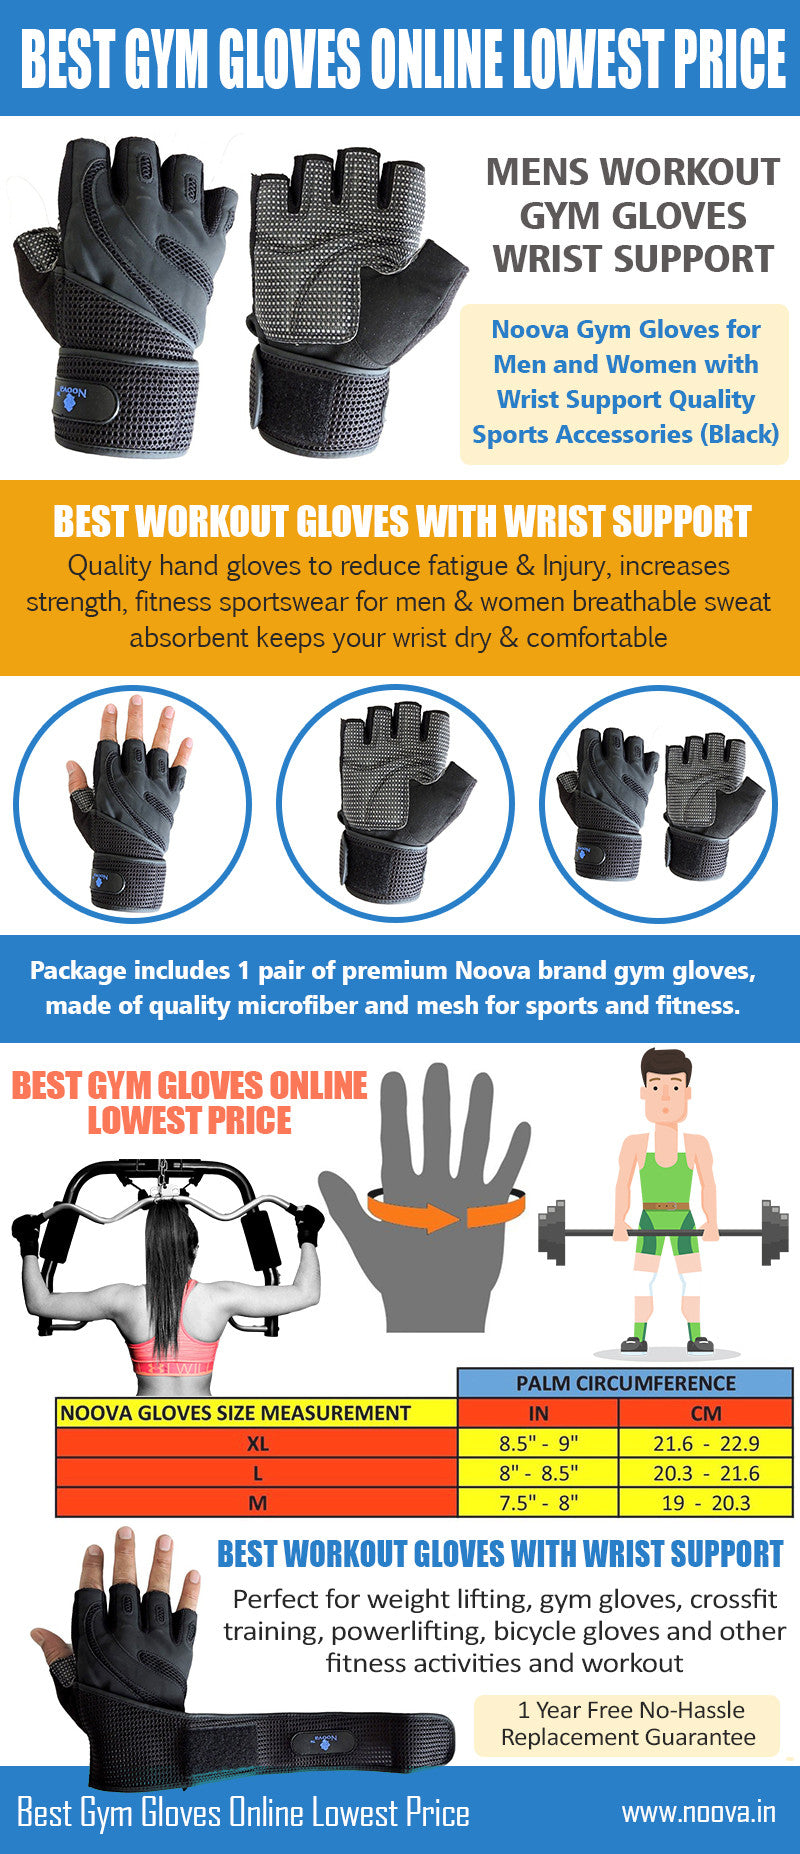 noova gym gloves